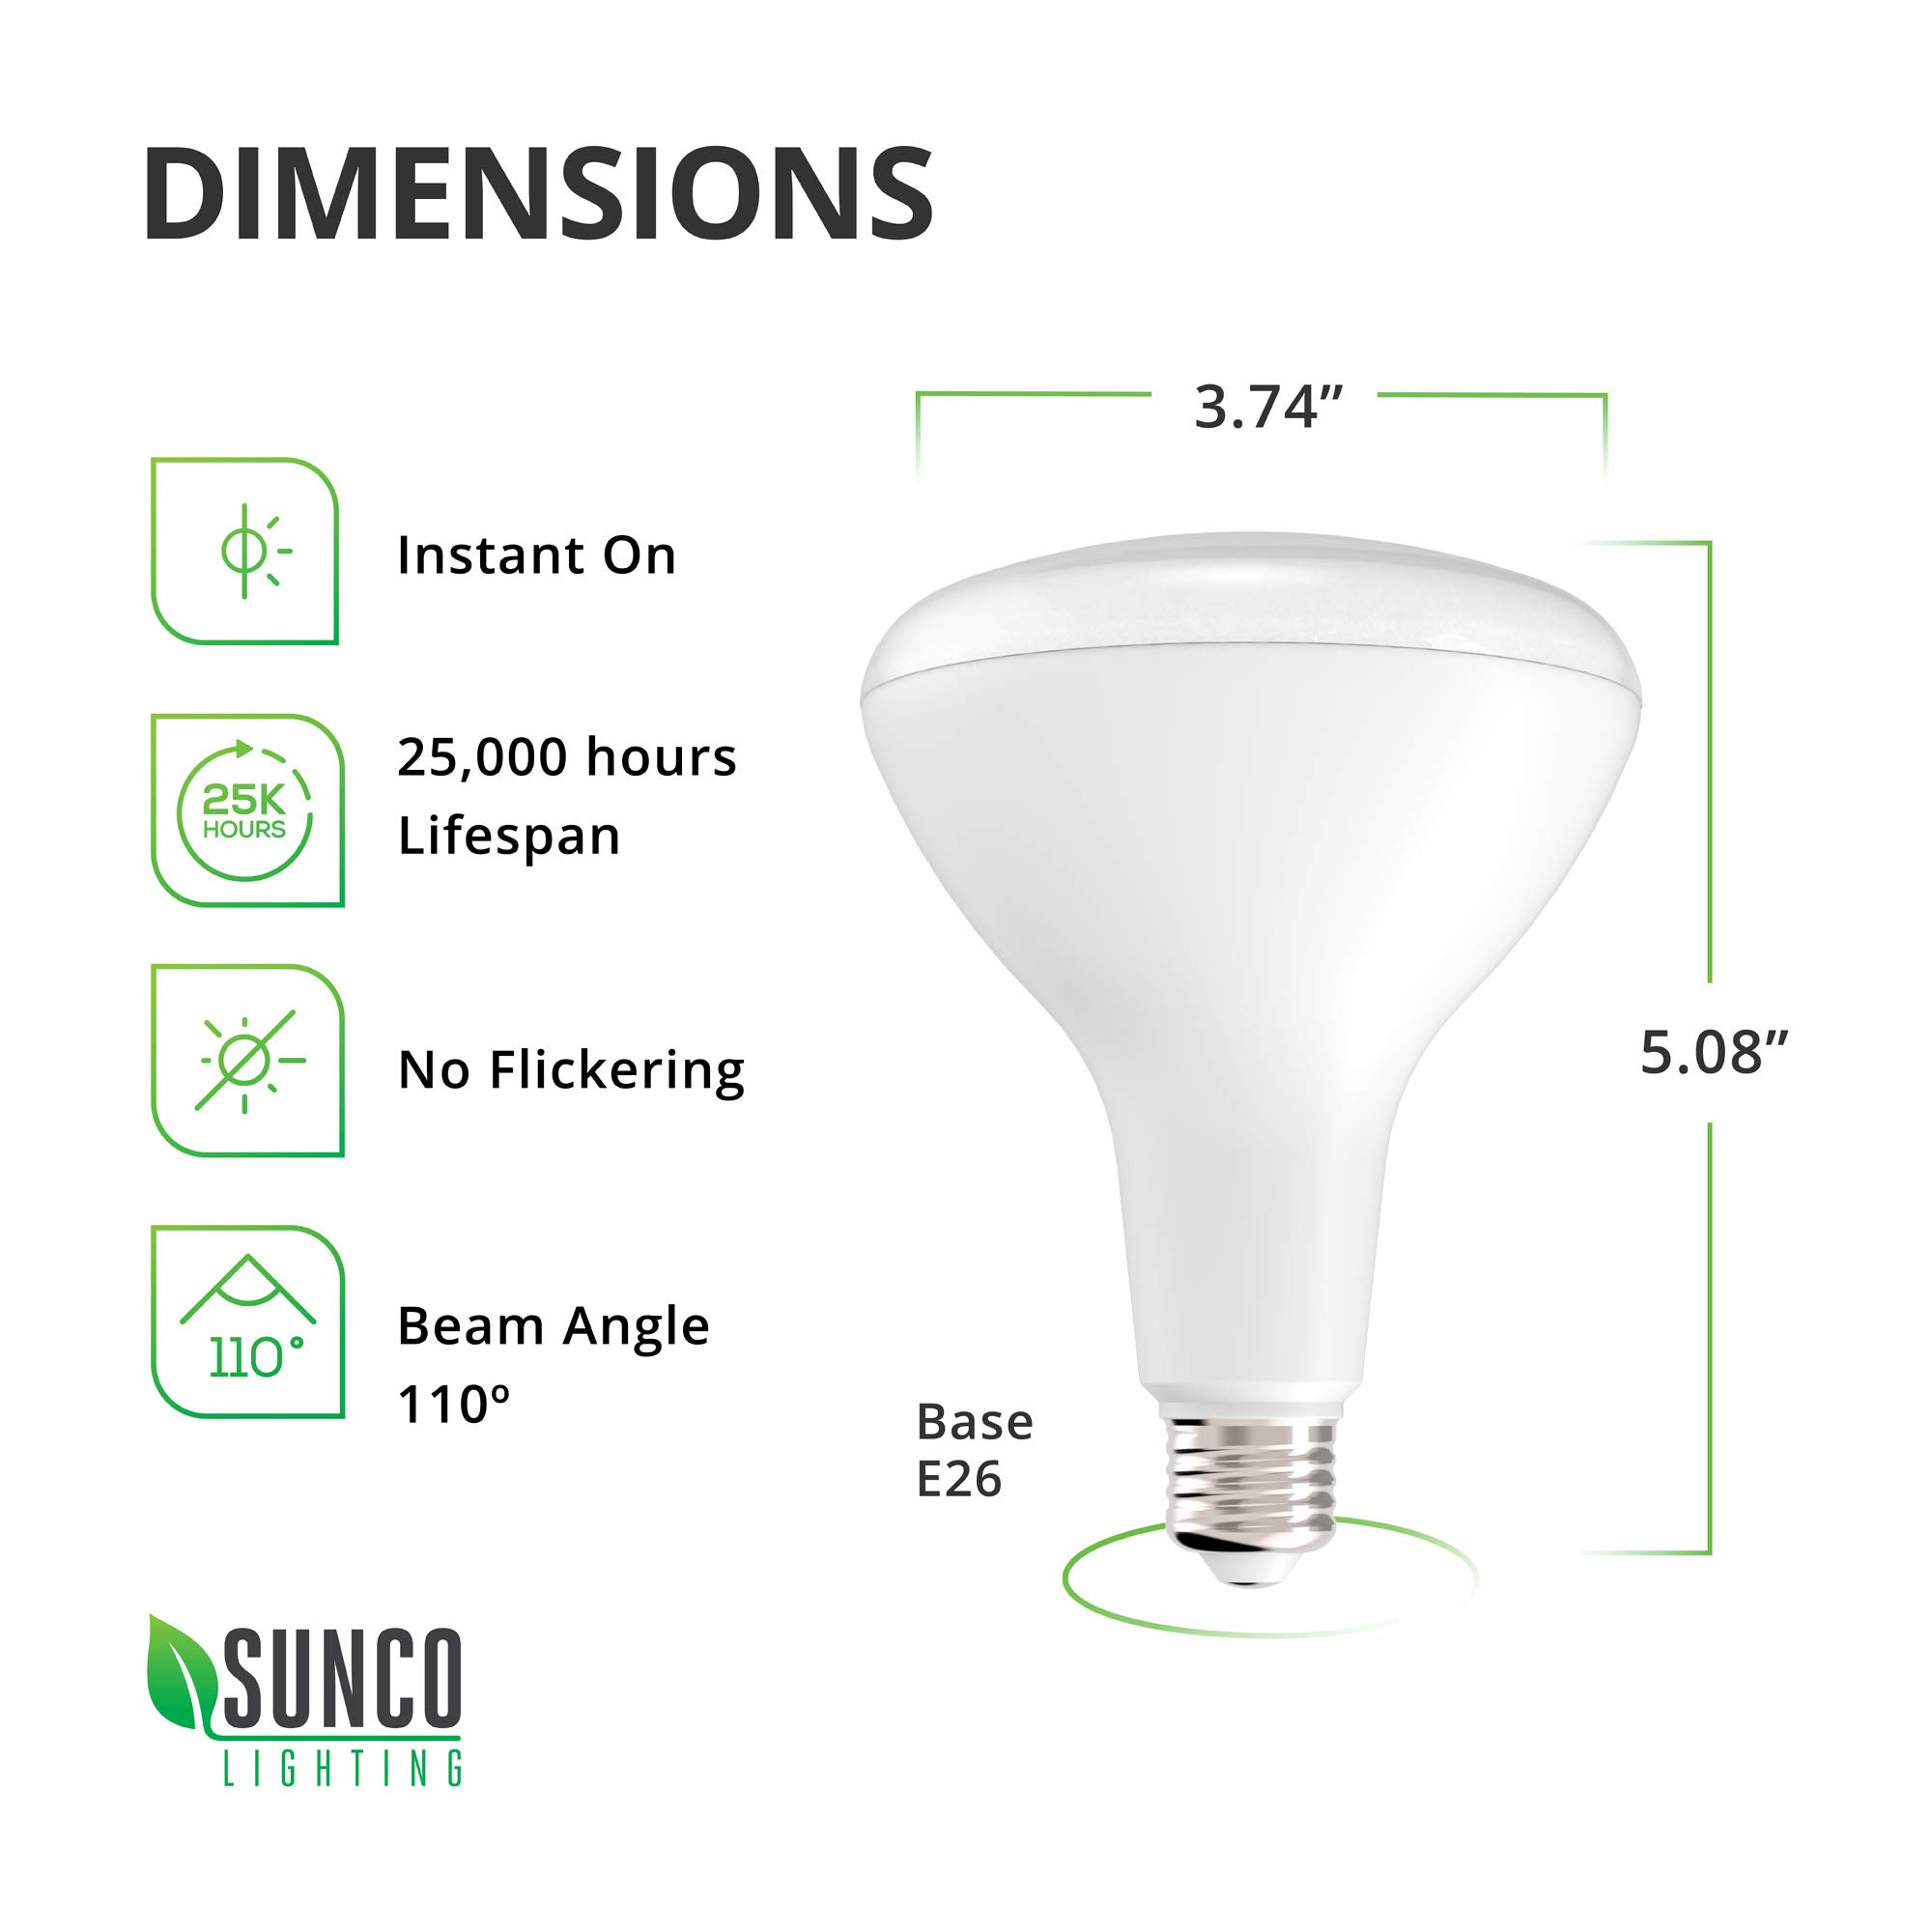 Sunco Lighting 48 Pack BR30 LED Bulb 11W=65W, 2700K Soft White, 850 LM, E26 Base, Dimmable, Indoor Flood Light for Cans - UL & Energy Star by Sunco Lighting (Image #4)